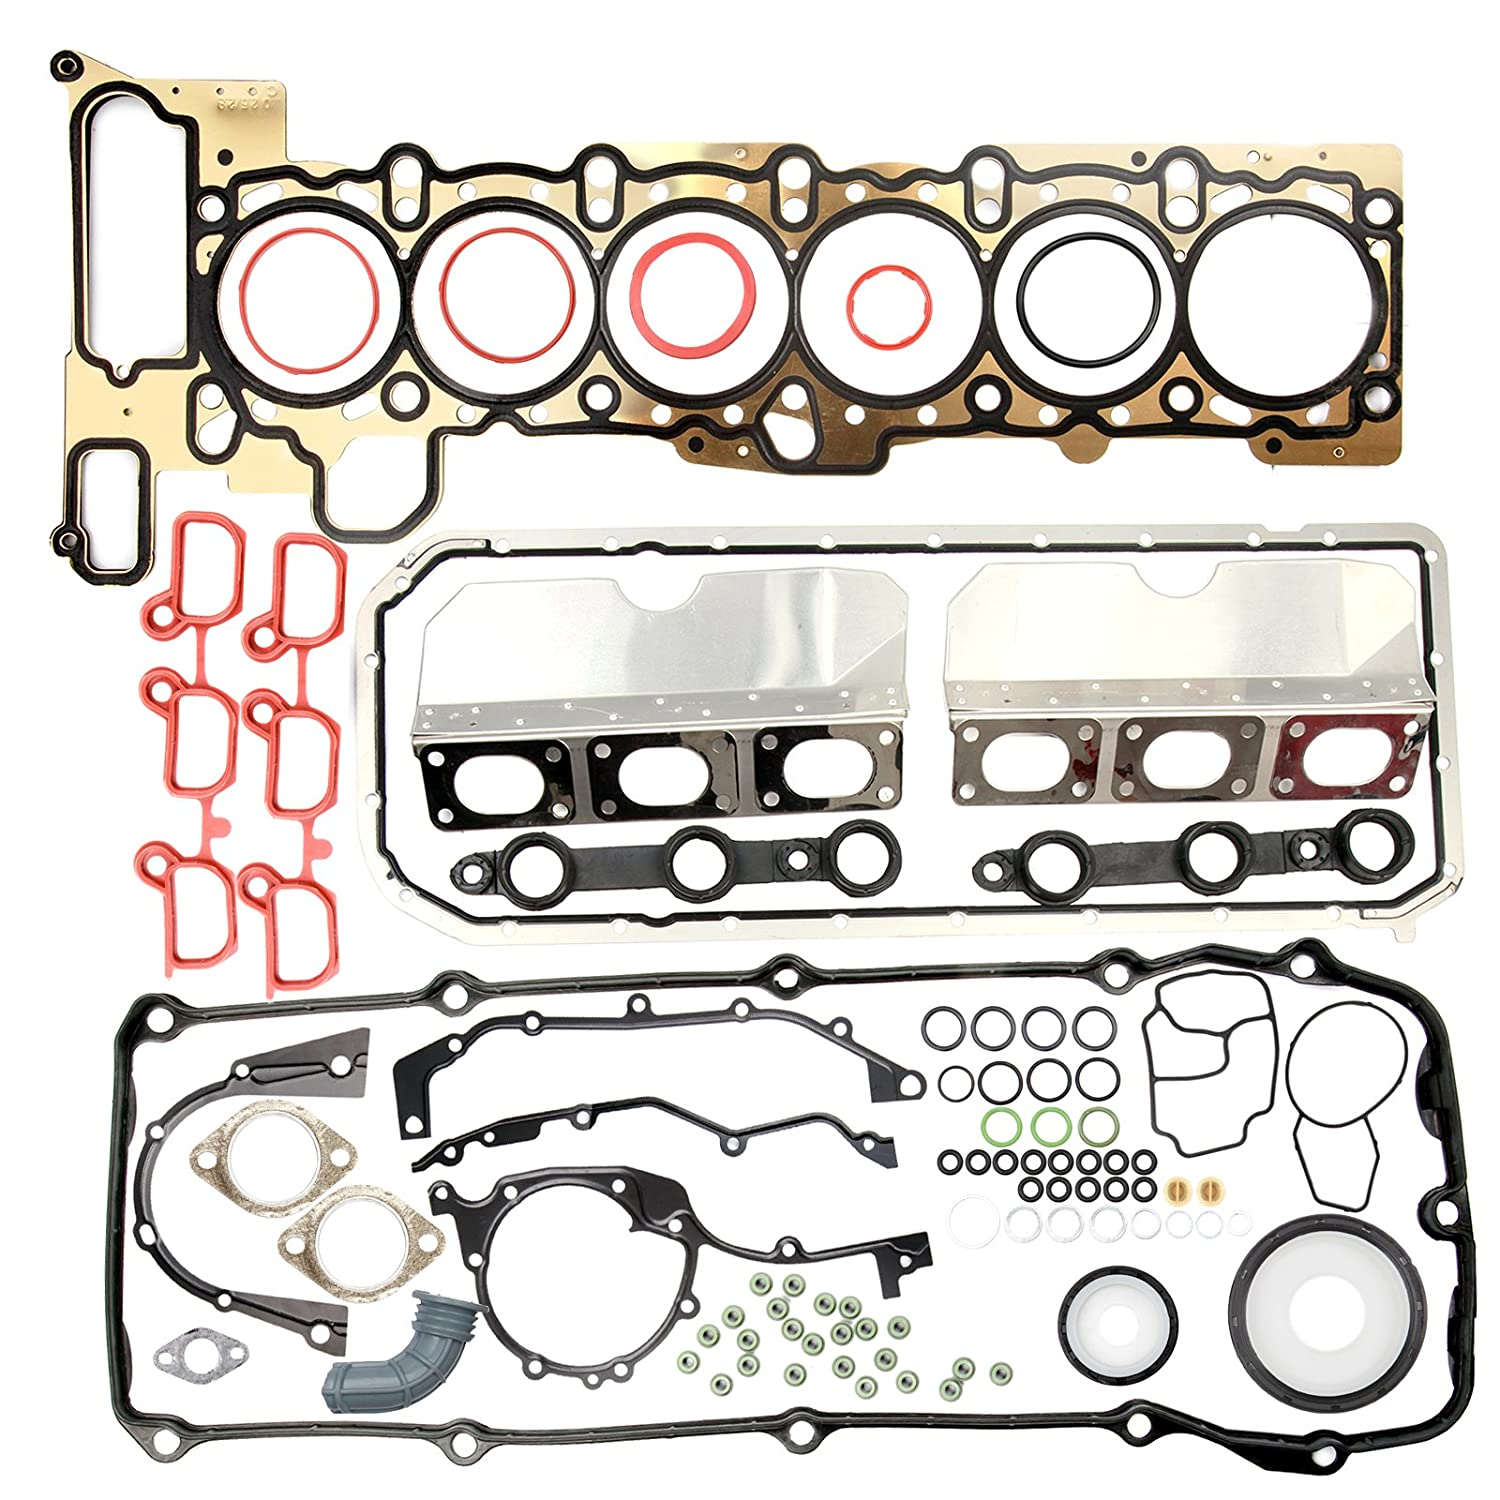 OCPTY Engine Cylinder Head and Lower Crankcase Gasket Set Replacement fit for BMW 530i 525i 2001-2002